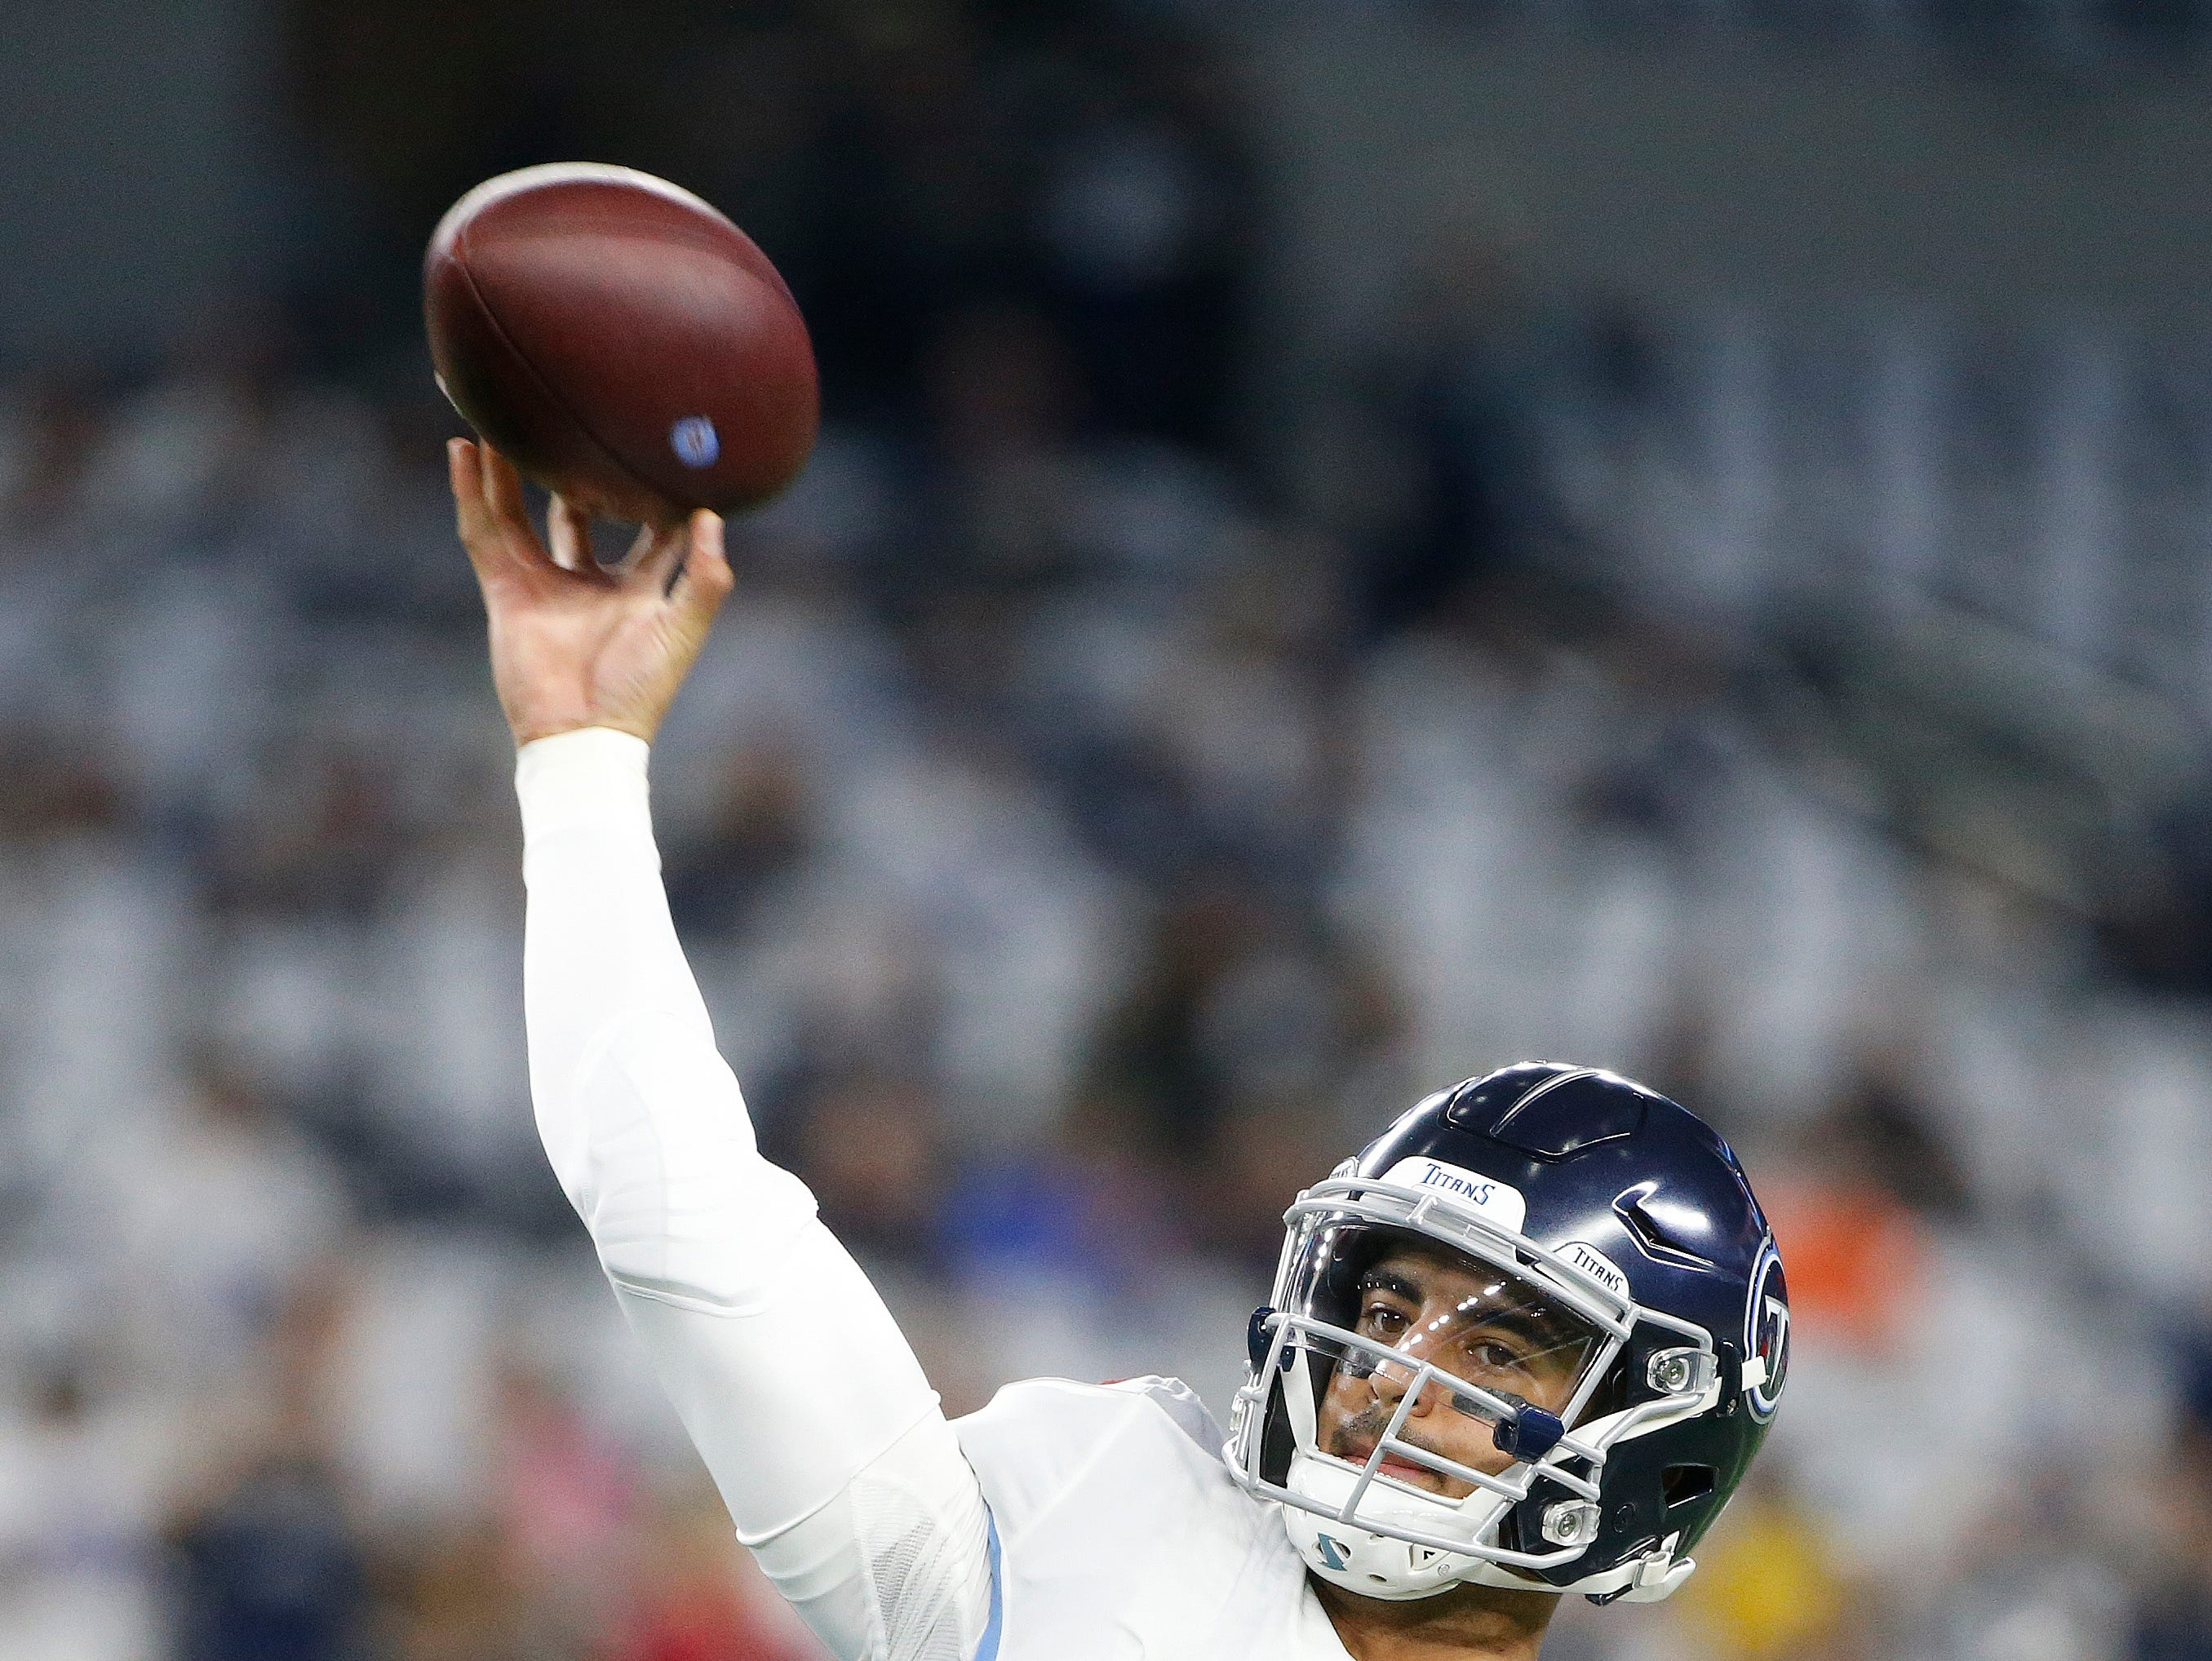 Tennessee Titans quarterback Marcus Mariota (8) warms up before the first half of an NFL football game between the Dallas Cowboys and the Tennessee Titans, Monday, Nov. 5, 2018, in Arlington, Texas.